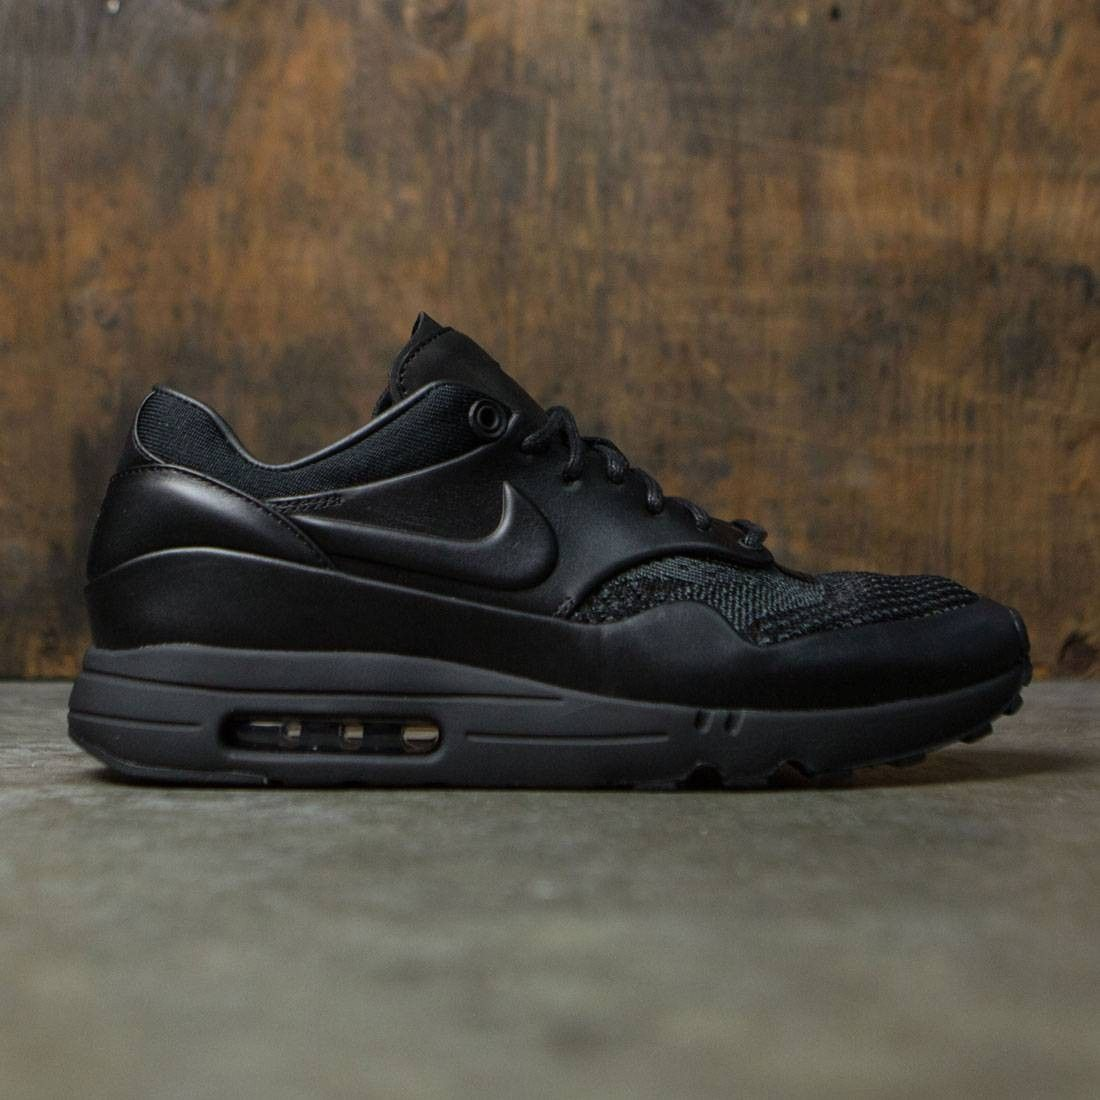 release date nike air max 1 flyknit royal schwarz 8c1d8 84f26